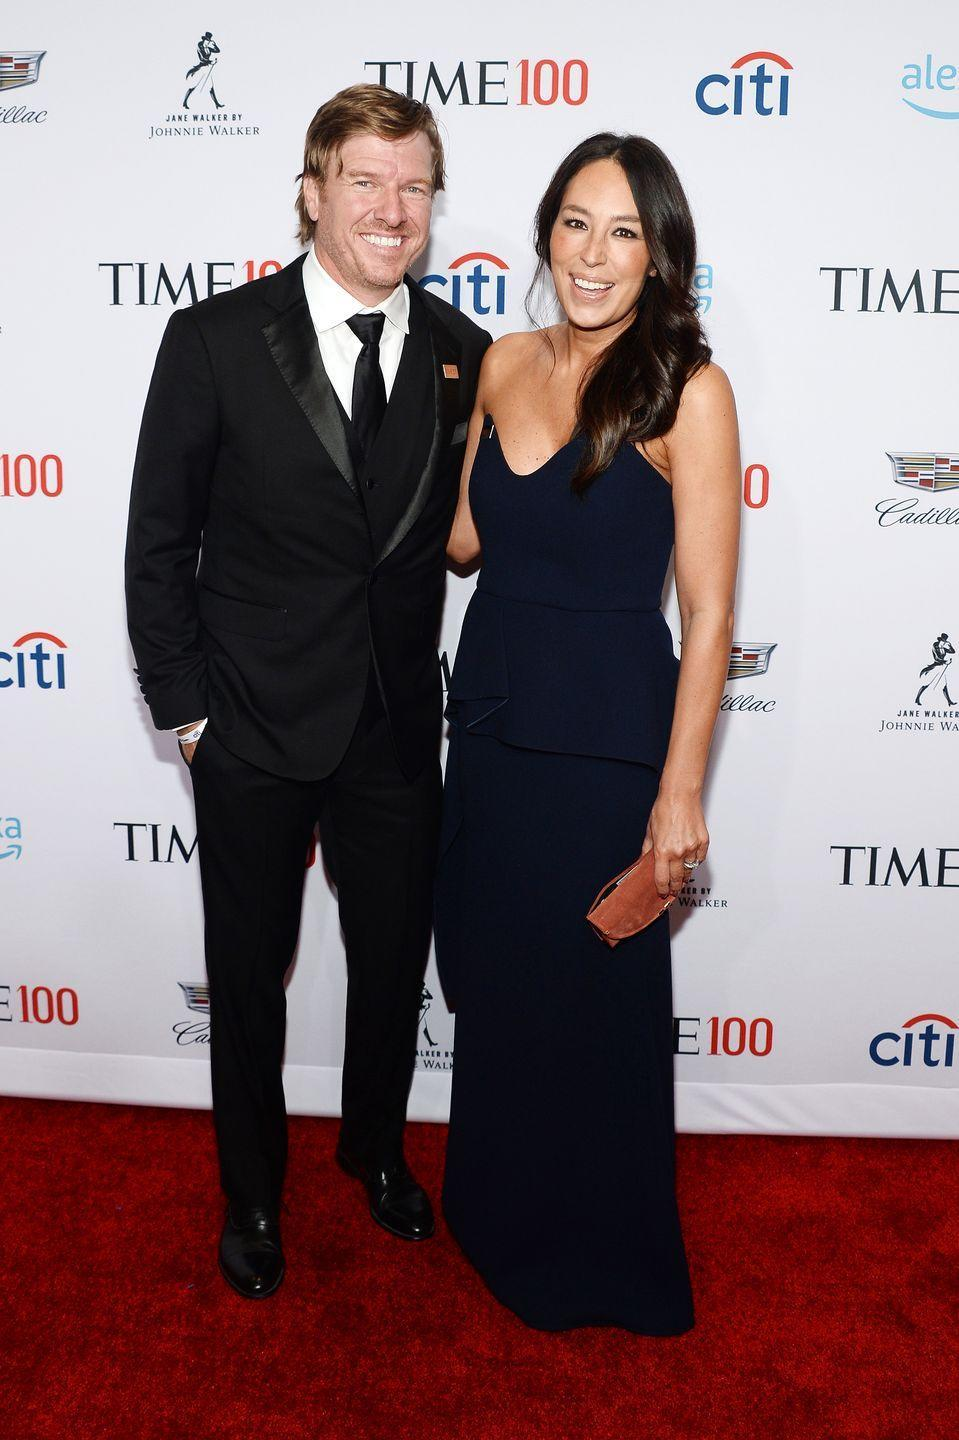 """<p>The former <em>Fixer Upper </em>stars have always spoken openly about their faith, and <a href=""""https://apnews.com/b7bf312b057e45dc9571d8968c0b13ad"""" rel=""""nofollow noopener"""" target=""""_blank"""" data-ylk=""""slk:recently began inviting a local church to host services"""" class=""""link rapid-noclick-resp"""">recently began inviting a local church to host services</a> at Magnolia Market. In <em>The Magnolia Story</em>,<a href=""""https://www.amazon.com/Magnolia-Story-Chip-Gaines/dp/0718079183/ref=tmm_hrd_swatch_0?tag=syn-yahoo-20&ascsubtag=%5Bartid%7C10063.g.36700789%5Bsrc%7Cyahoo-us"""" rel=""""nofollow noopener"""" target=""""_blank"""" data-ylk=""""slk:Joanna wrote, &quot;I came to think of God"""" class=""""link rapid-noclick-resp""""> Joanna wrote, """"I came to think of God</a> as more of a gracious friend who was accompanying me on this journey, a friend who wanted to carry my burdens and speak into my life and shape me into who I really was and who I would become.""""</p>"""